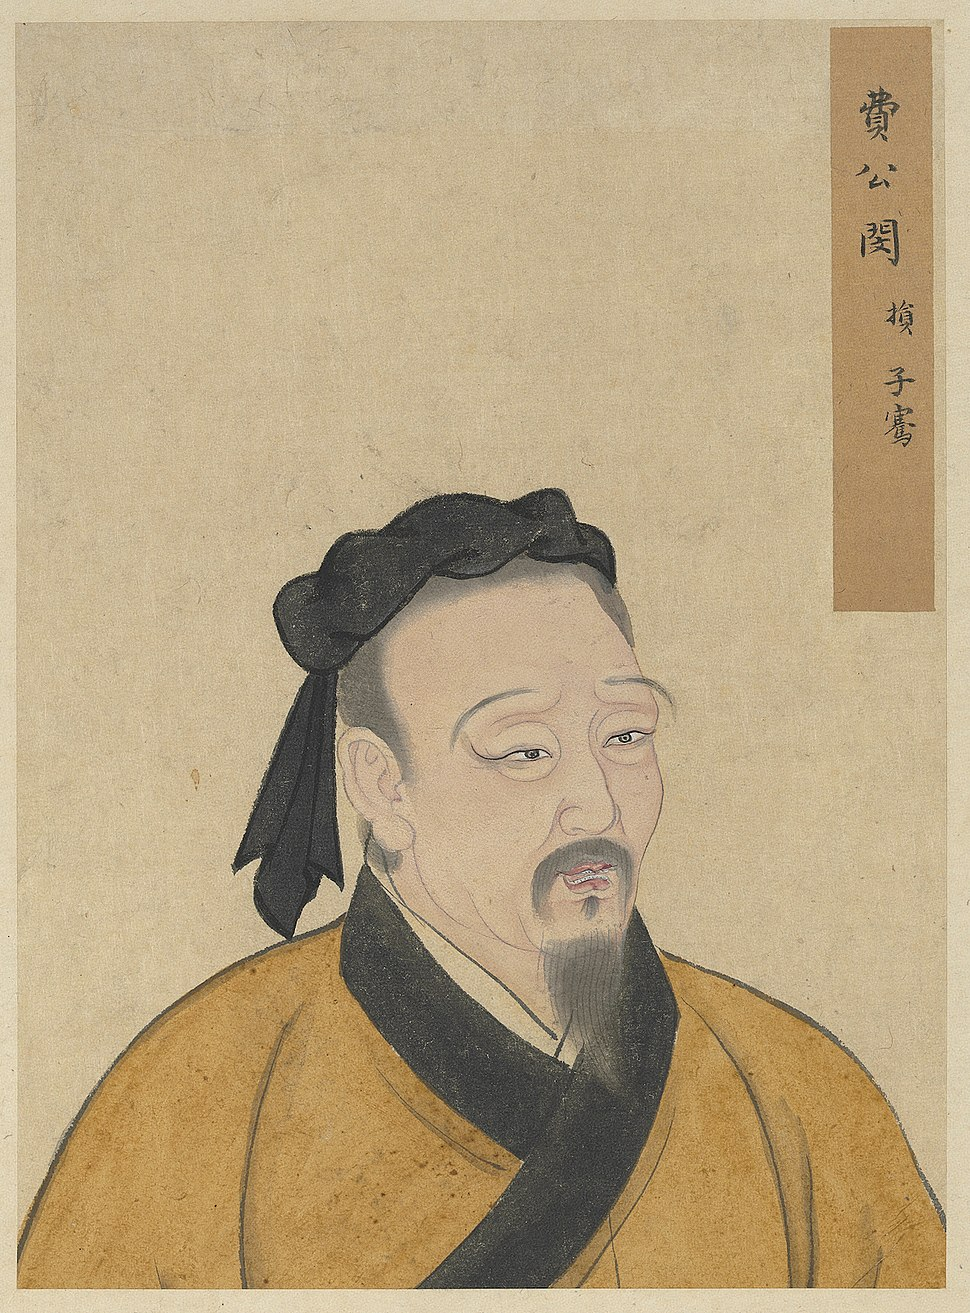 Half Portraits of the Great Sage and Virtuous Men of Old - Min Sun Ziqian (閔損 子騫)